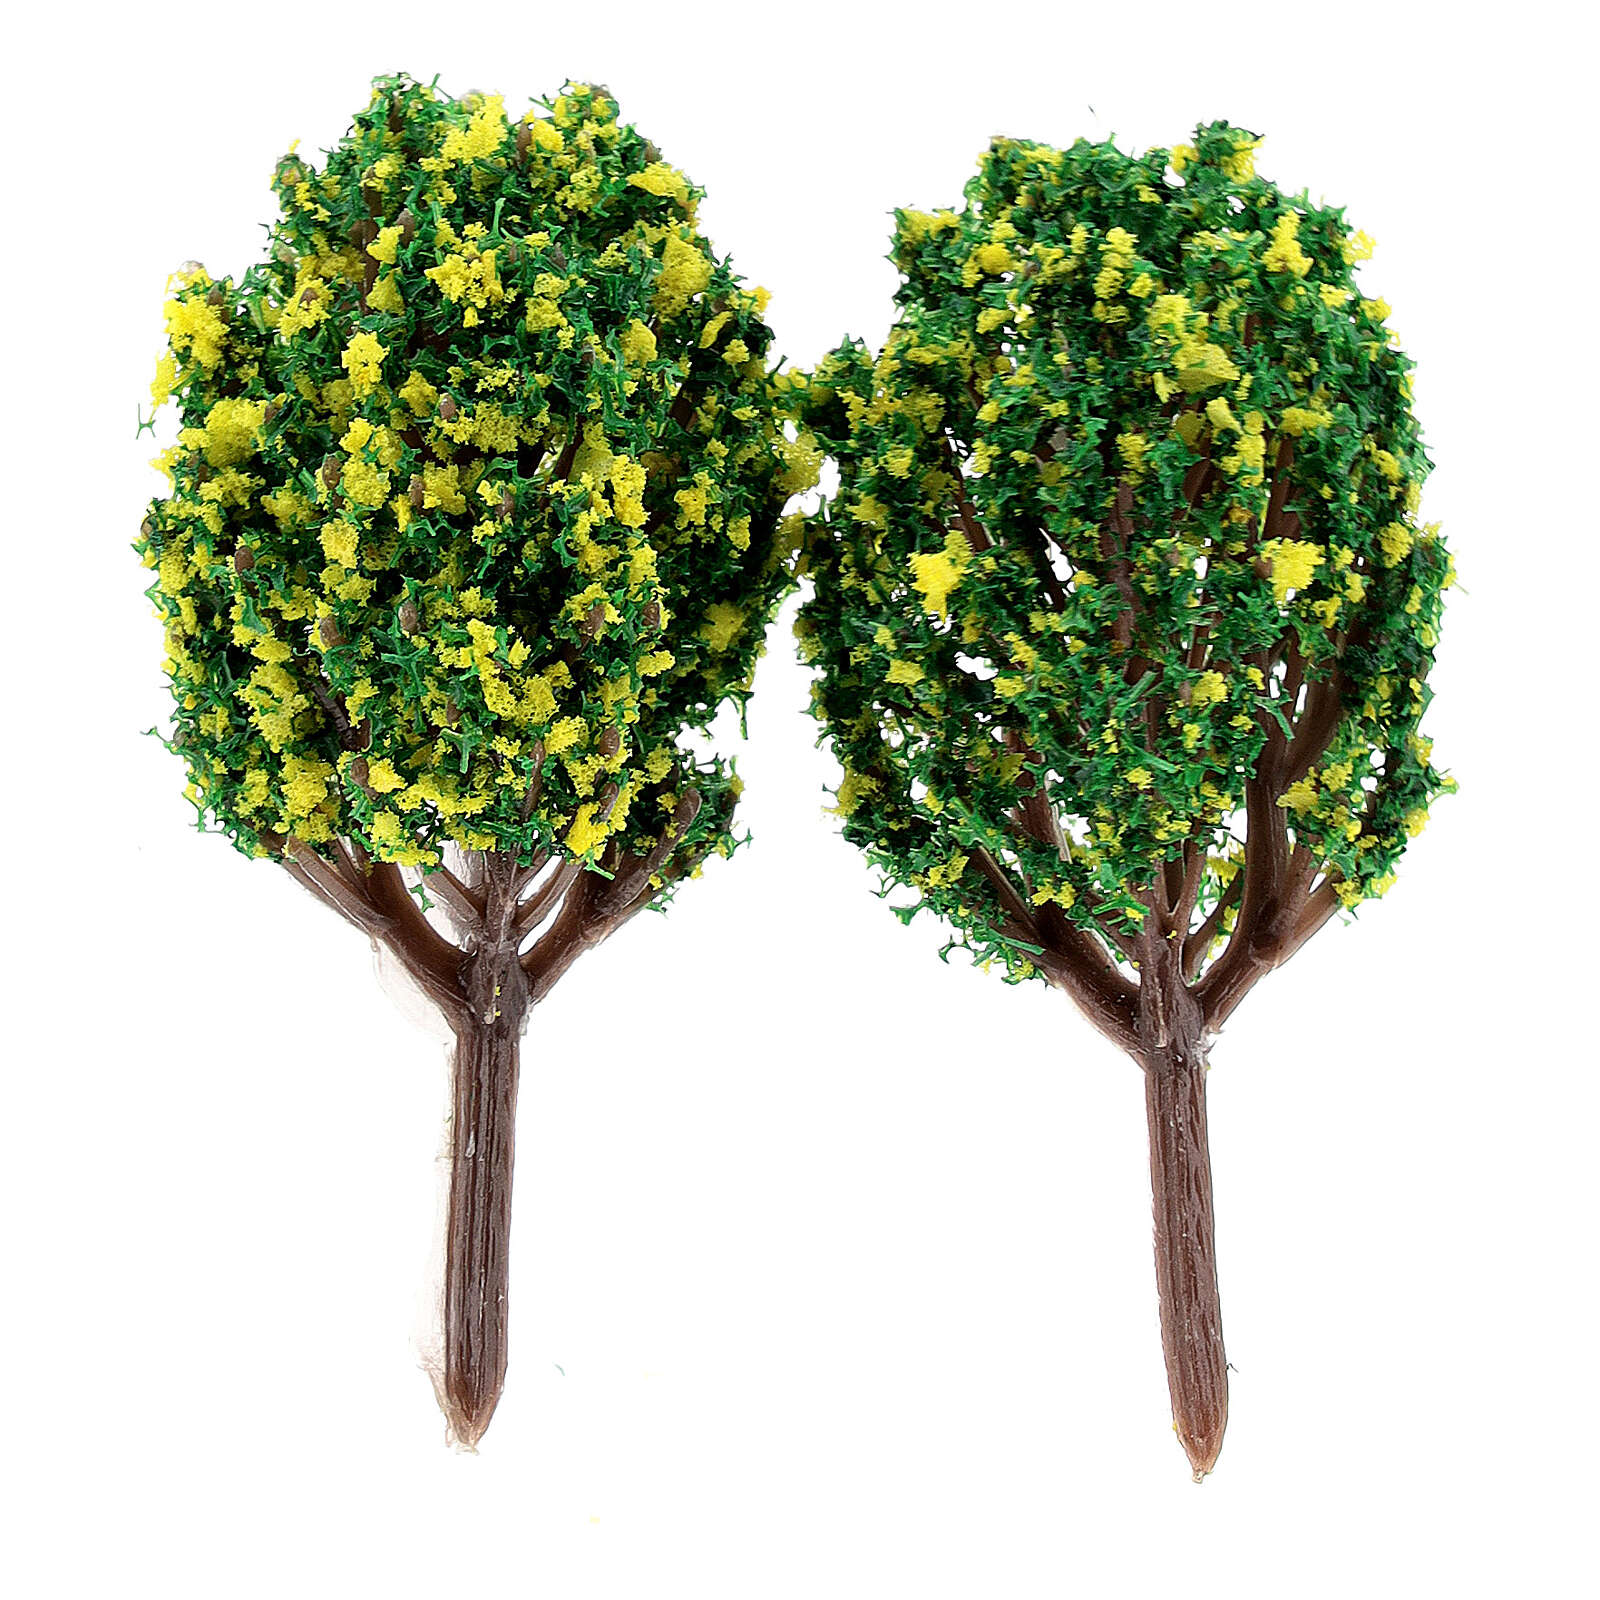 Lemon bushes for DIY Nativity scene (2 pcs) 4